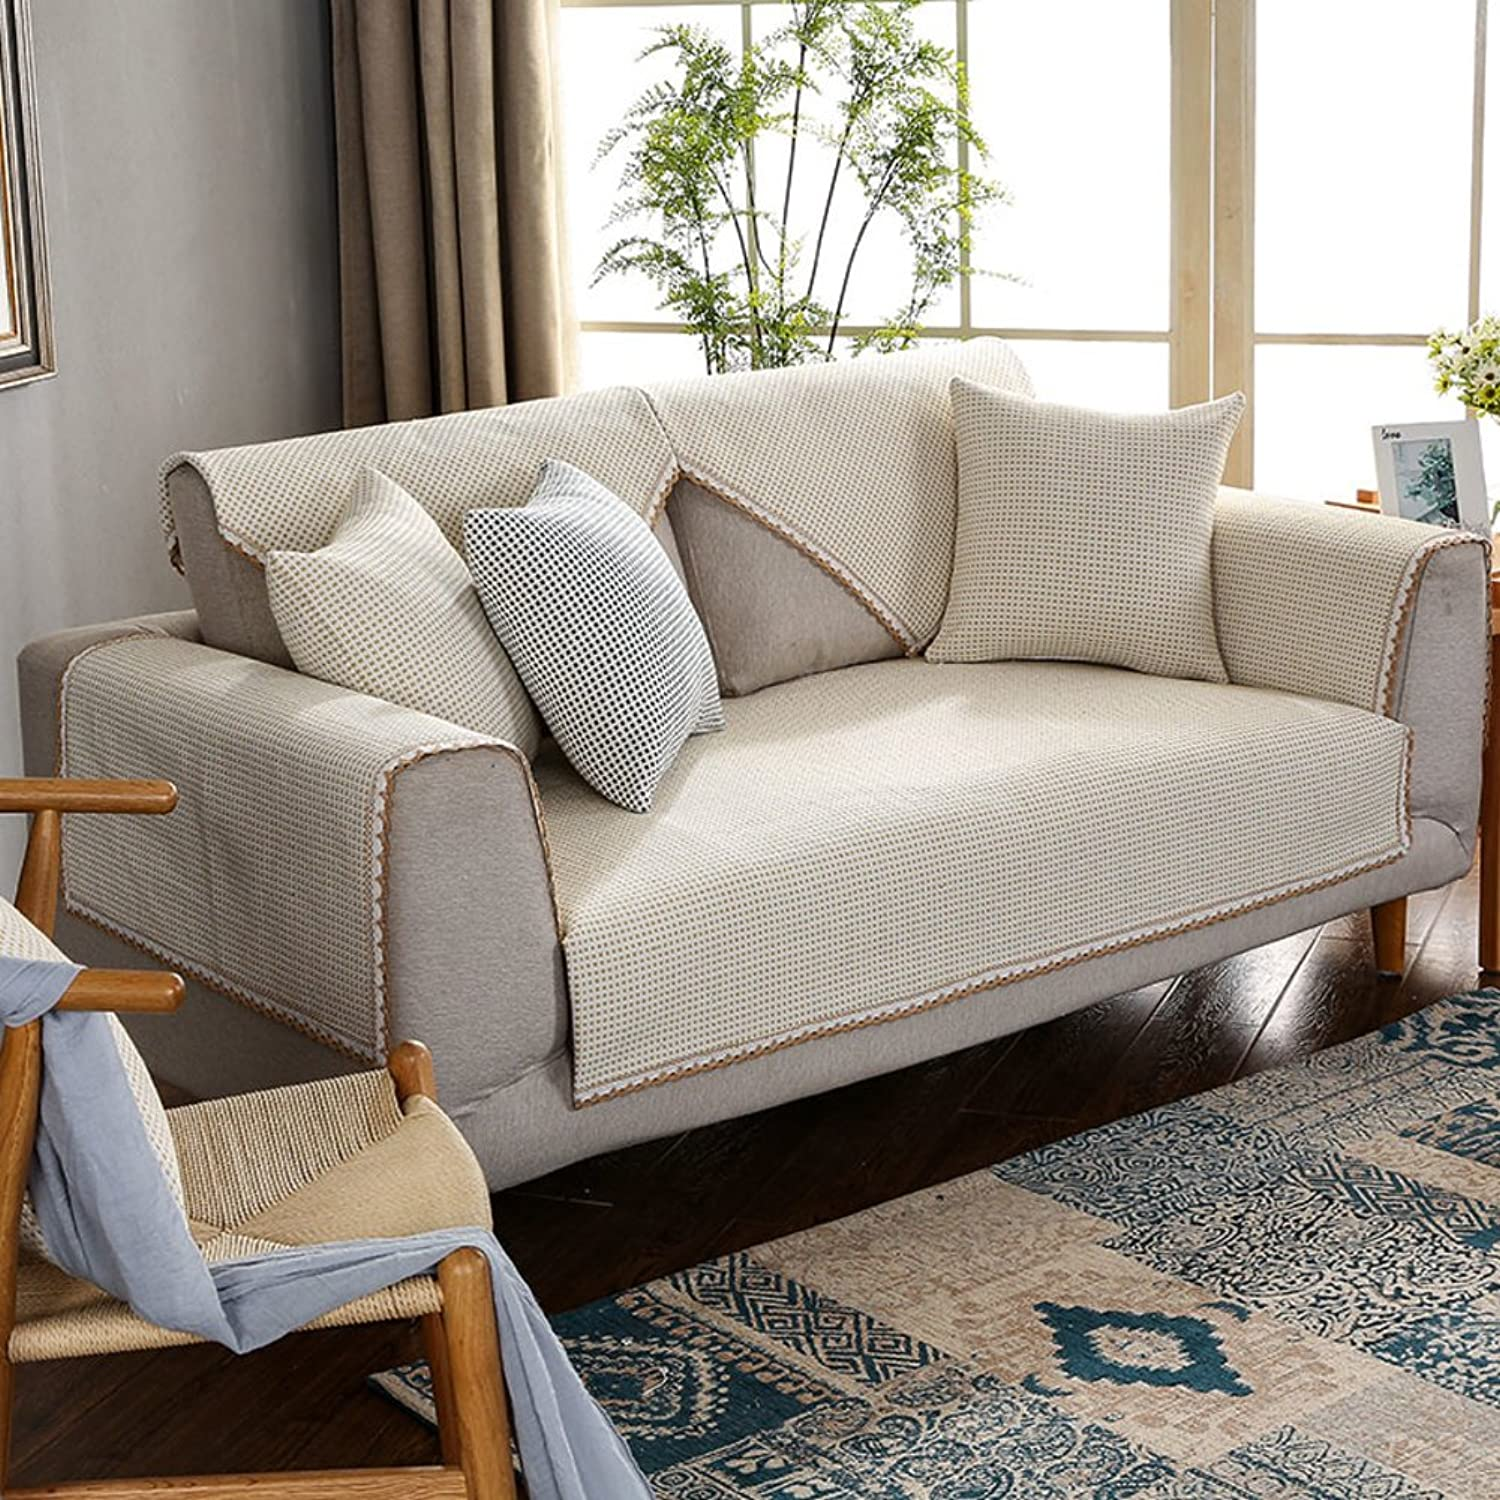 Sofa Cover,Dustproof Sofa Cover Reversible Quilting Cotton and Linen-D 110x210cm(43x83inch)